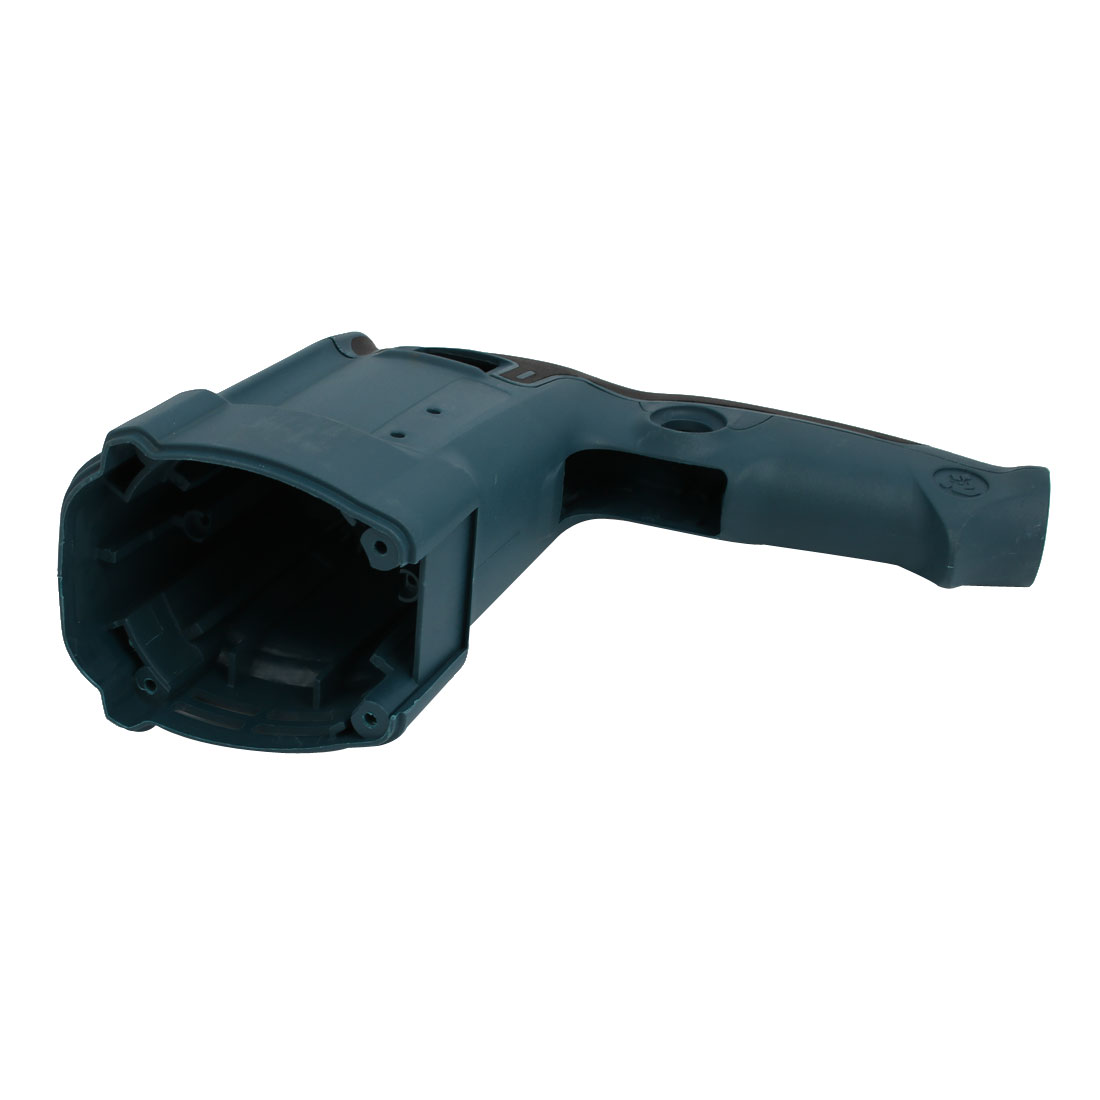 Power Tool Fittings Electric Hammer Shell Casing for Bosch GBH2-26D/DE/DRE - image 3 of 4